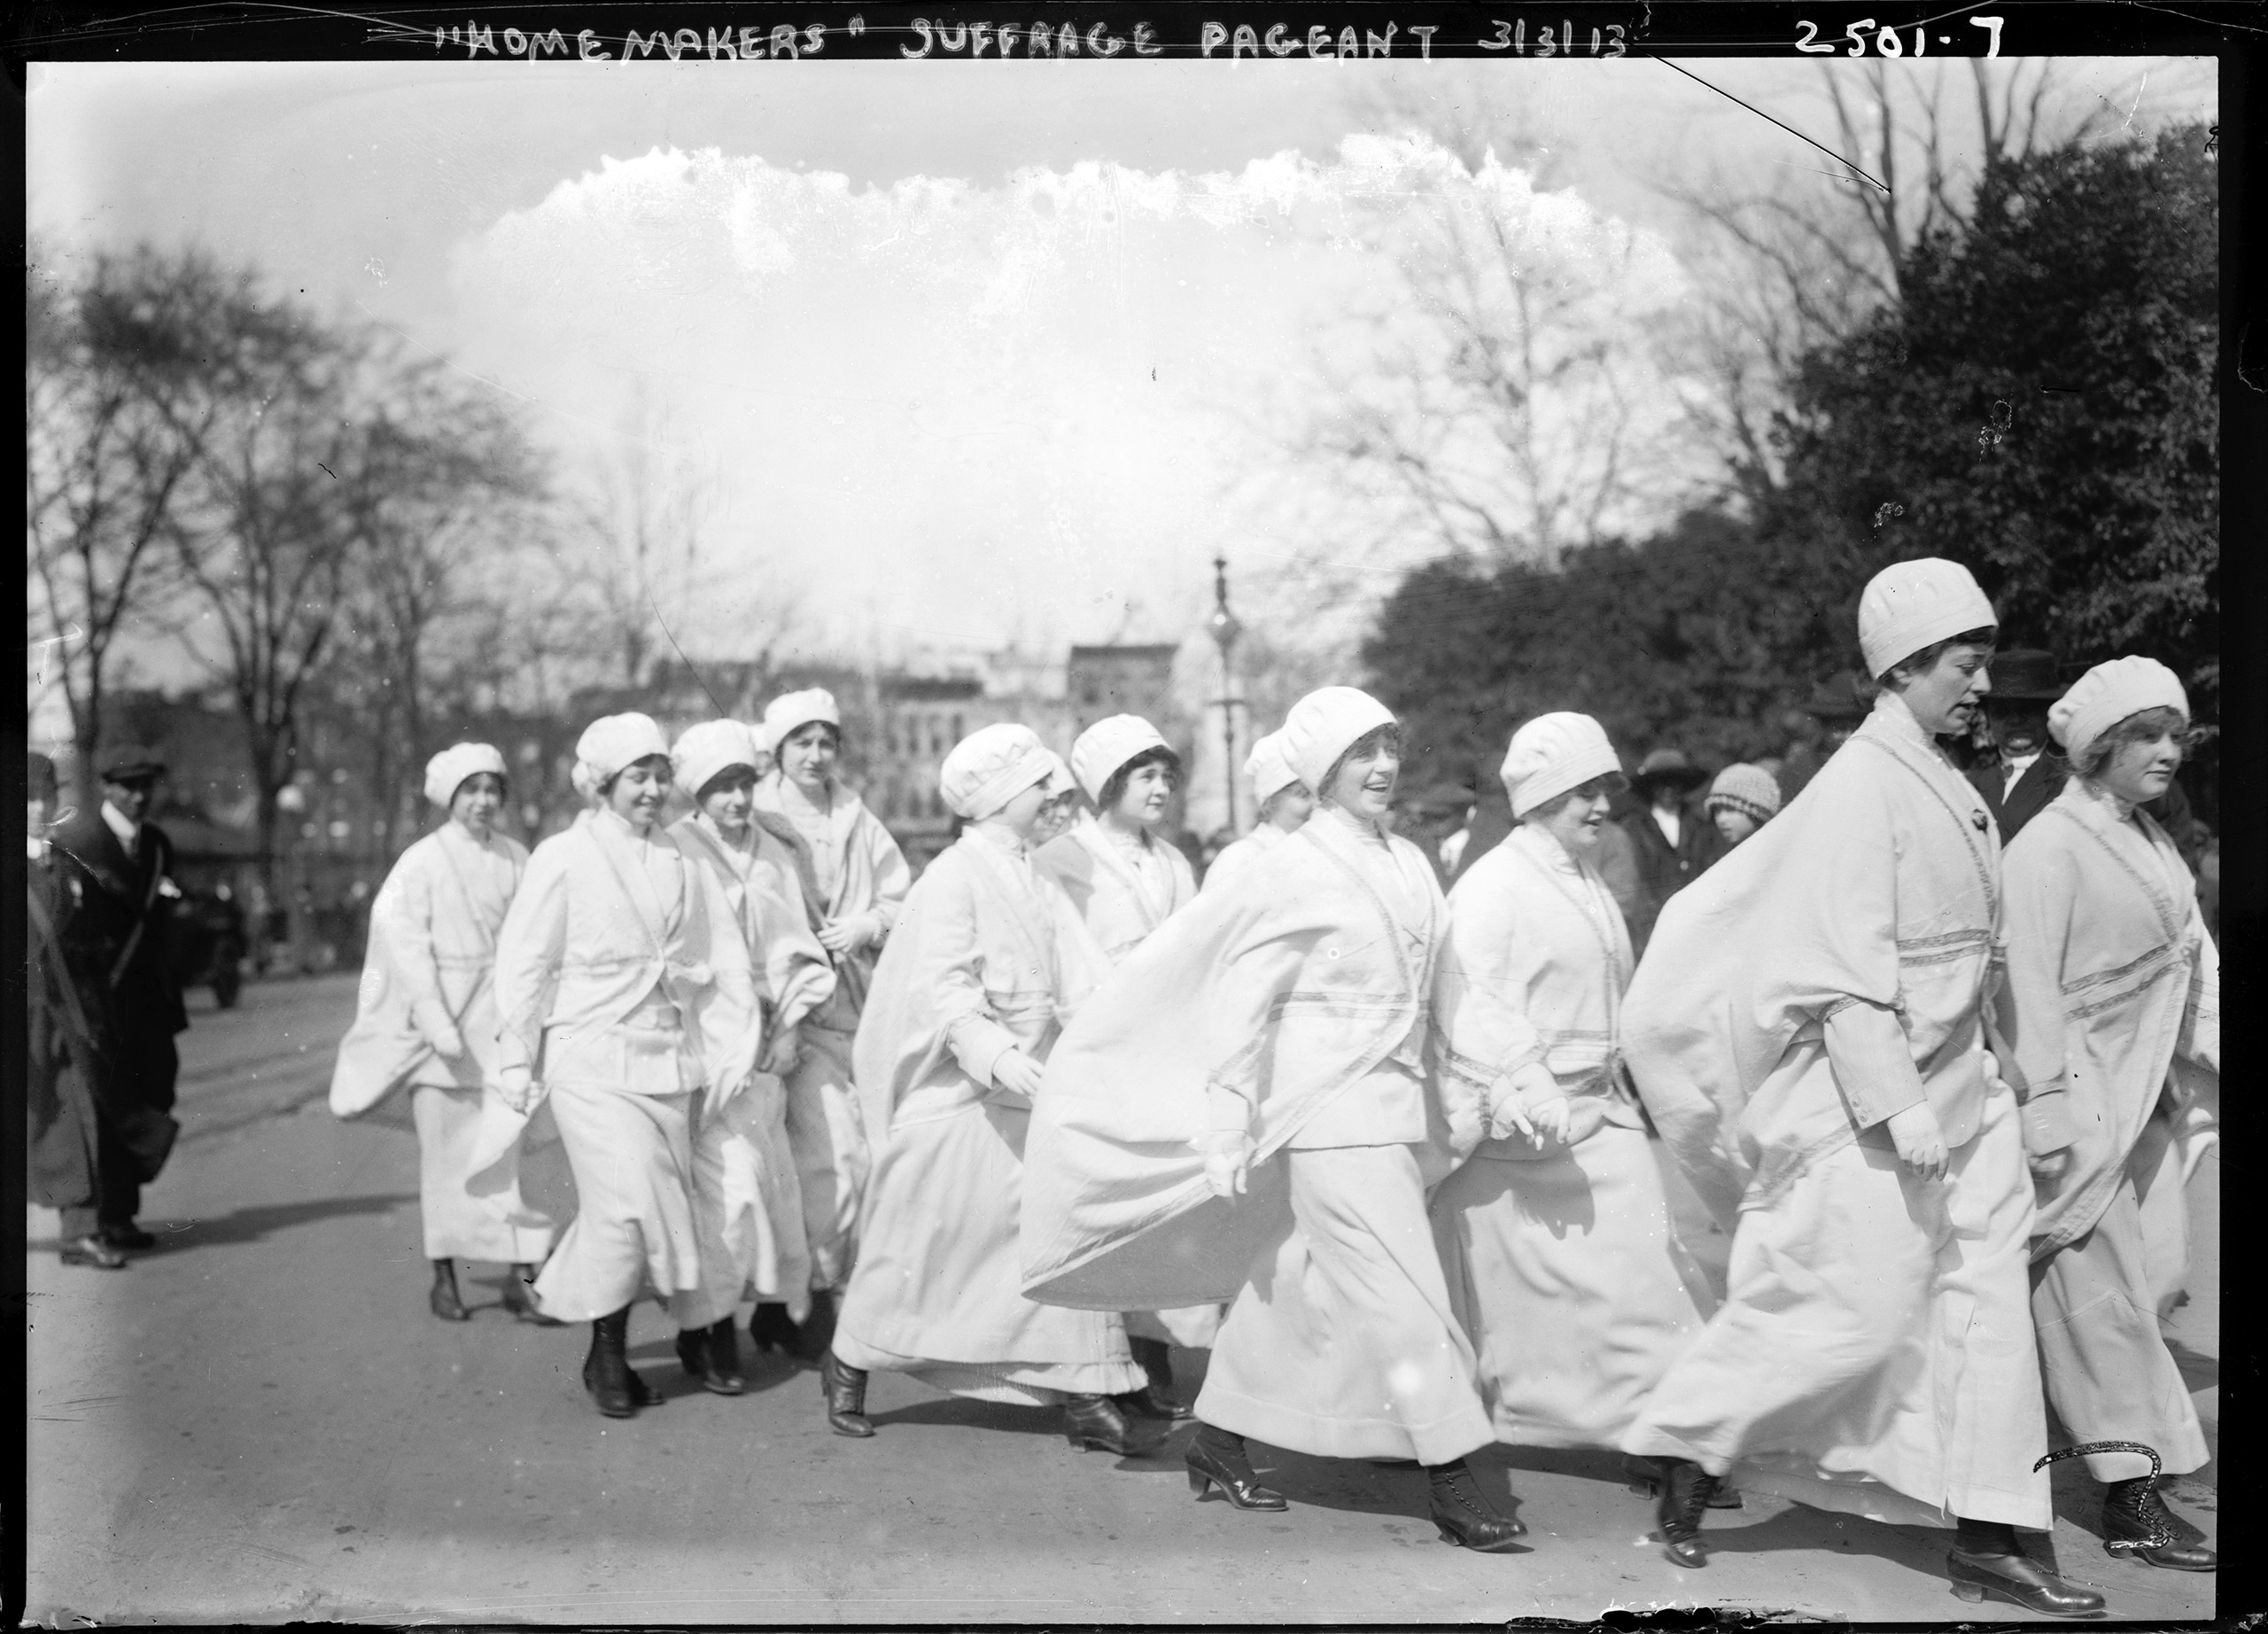 Woman Suffrage Parade held in Washington, D.C., March 3, 1913.